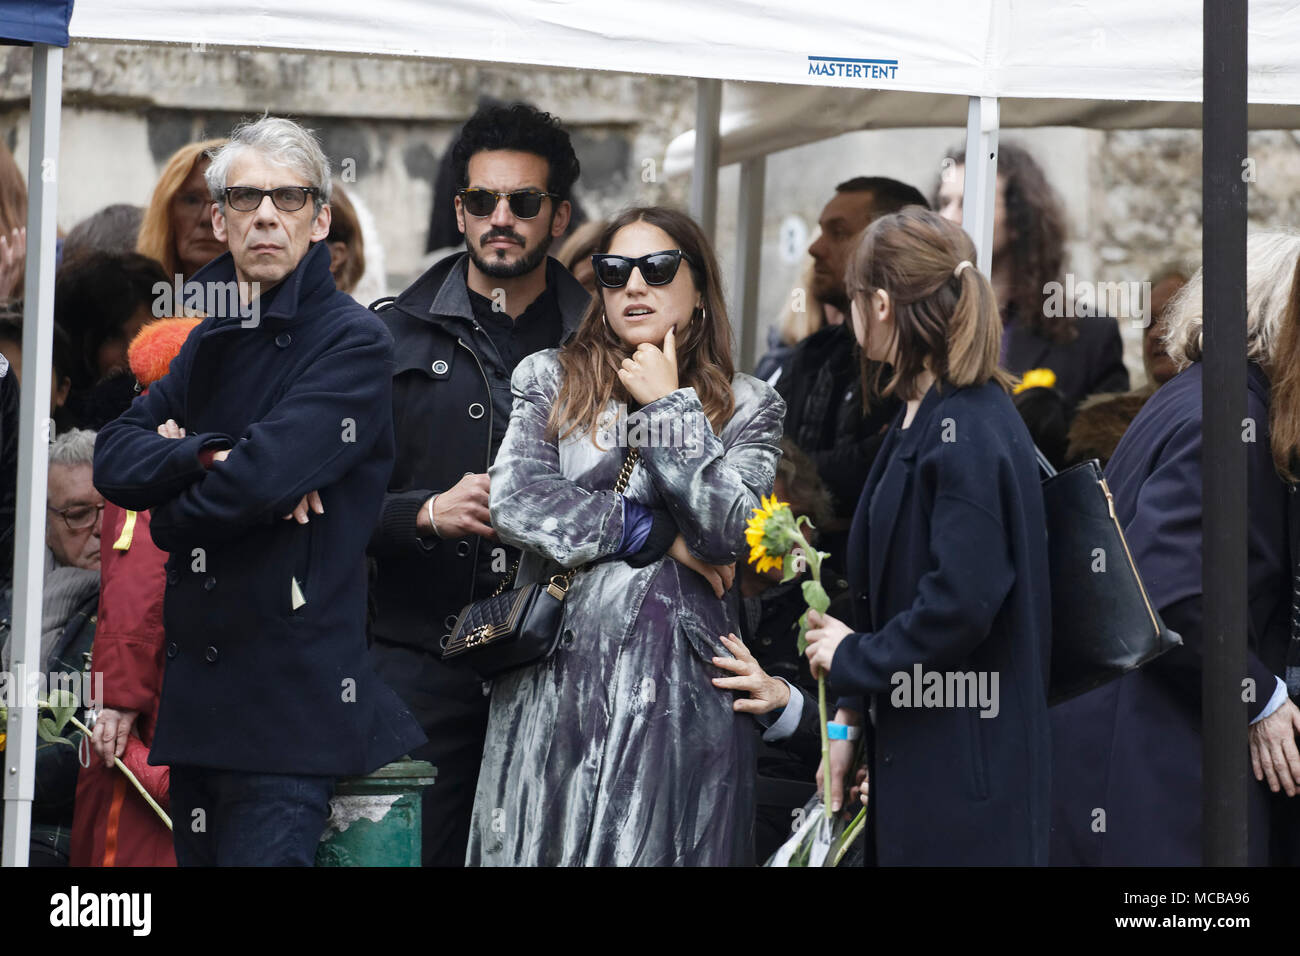 Paris, France. 12th Apr, 2018. Izia Higelin and his companion at the Jacques Higelin funeral at Père Lachaise cemetery on April 12, 2018 in Paris - Stock Image